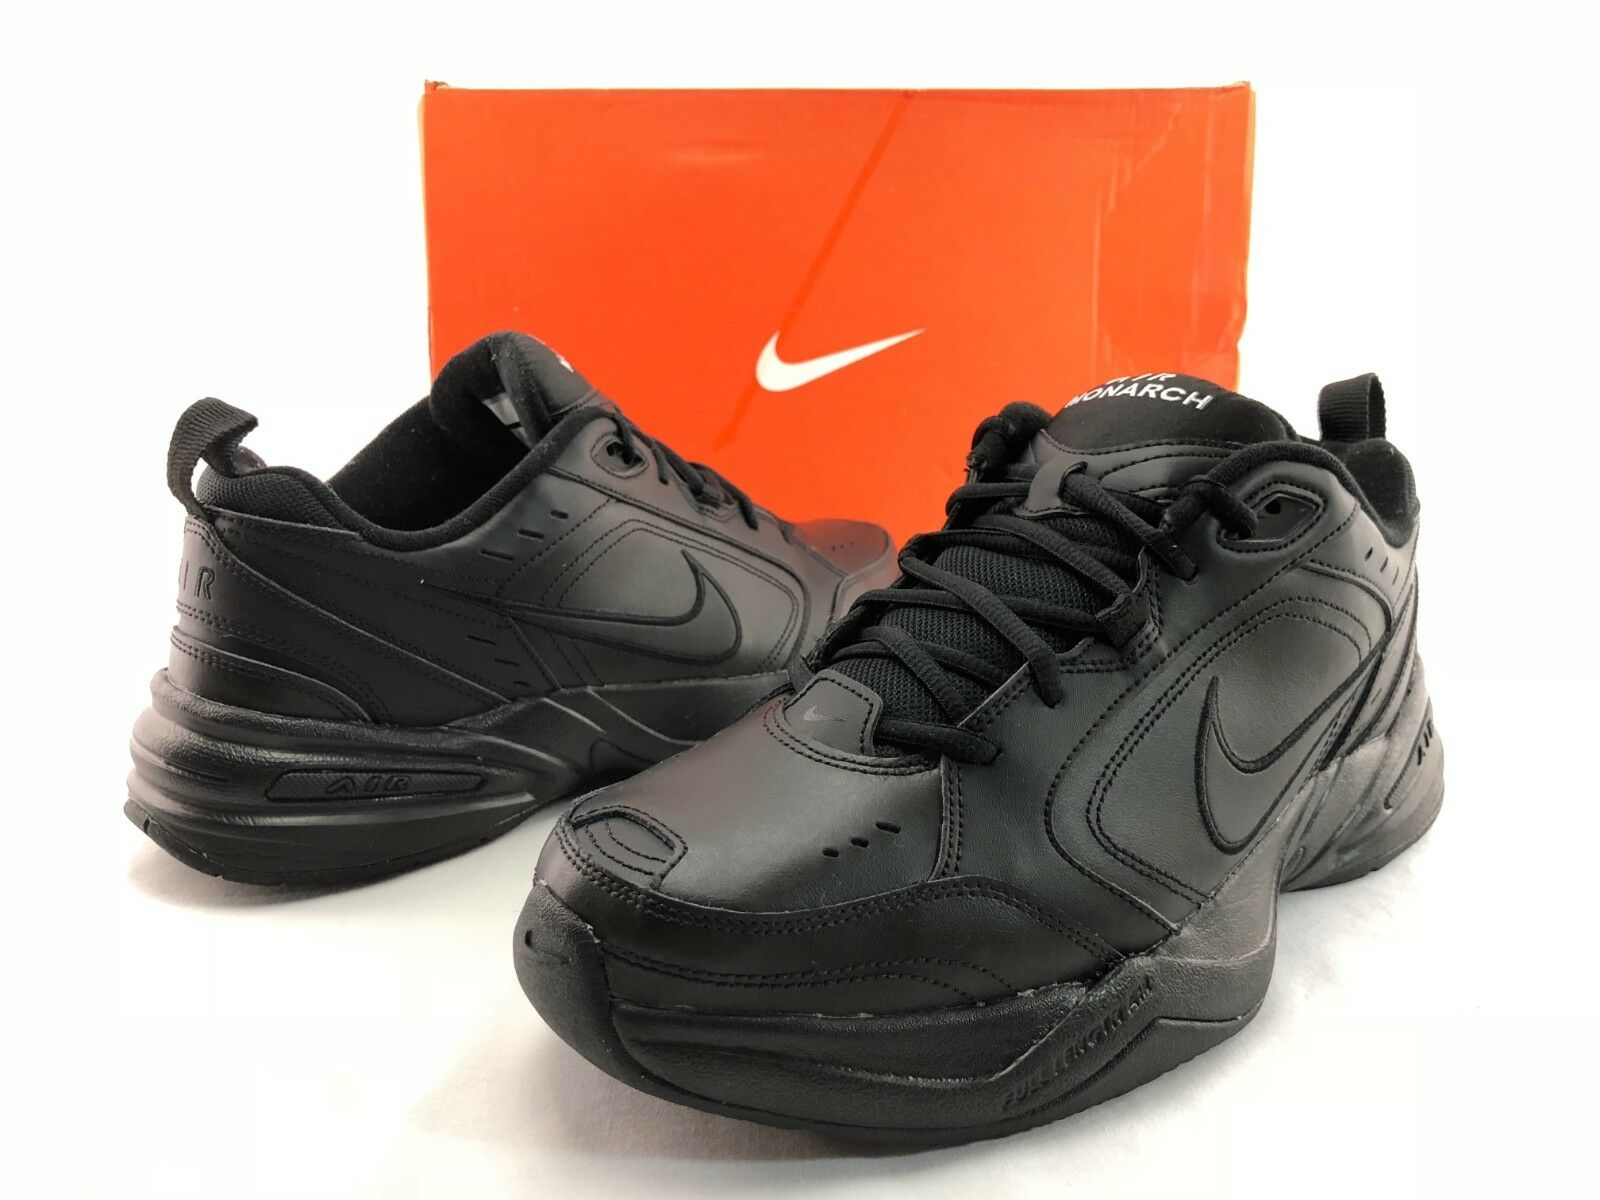 Nike AIR MONARCH IV Men's Black Comfort Lace Up Running Training shoes US 12 C52